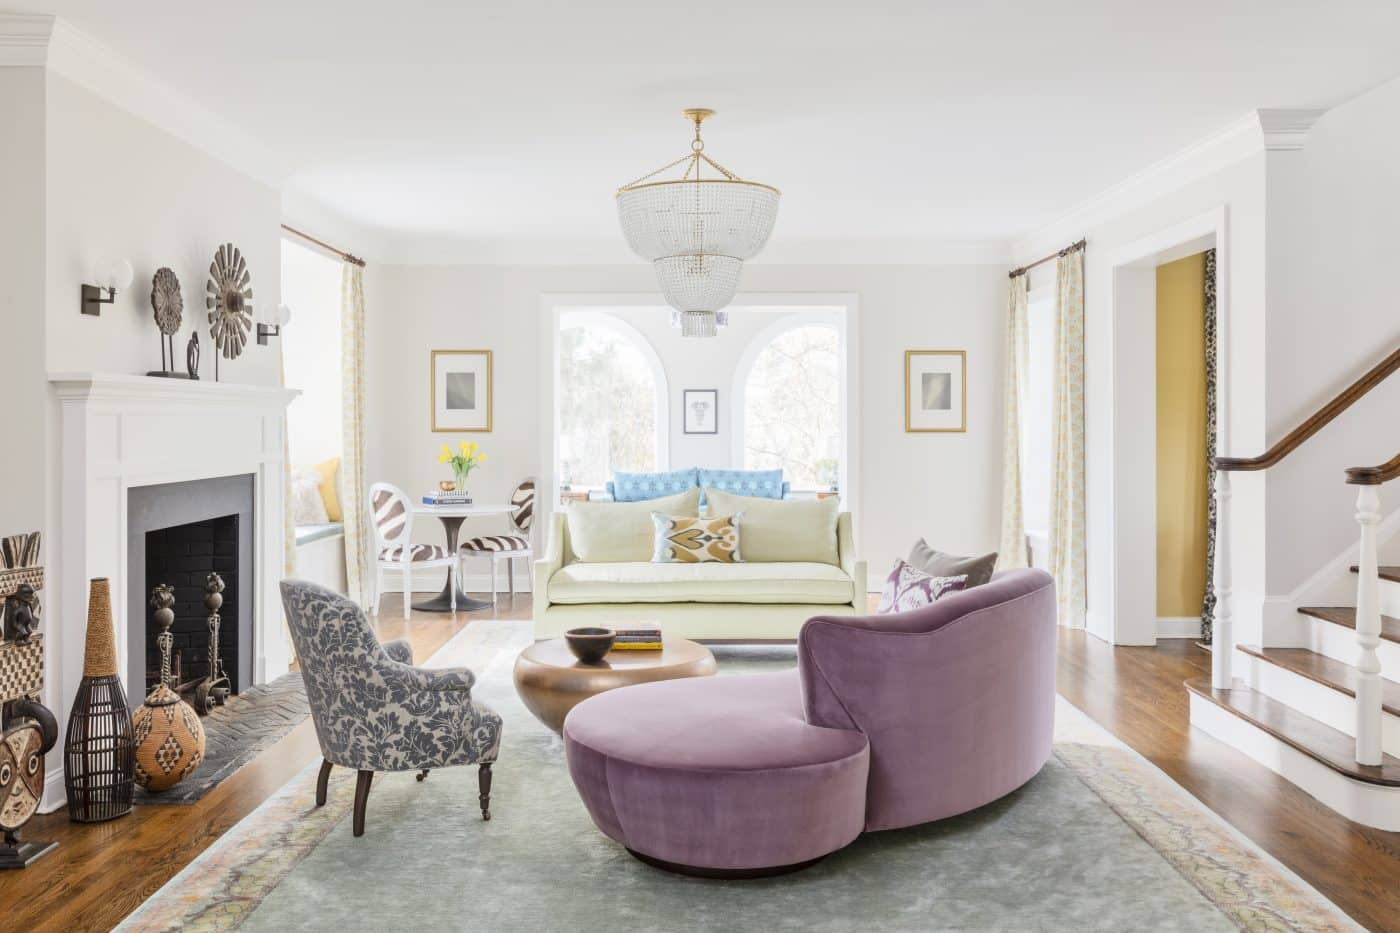 The living room of a Greenwich, Connecticut house with interiors by Danielle Fennoy of Revamp Interior Design